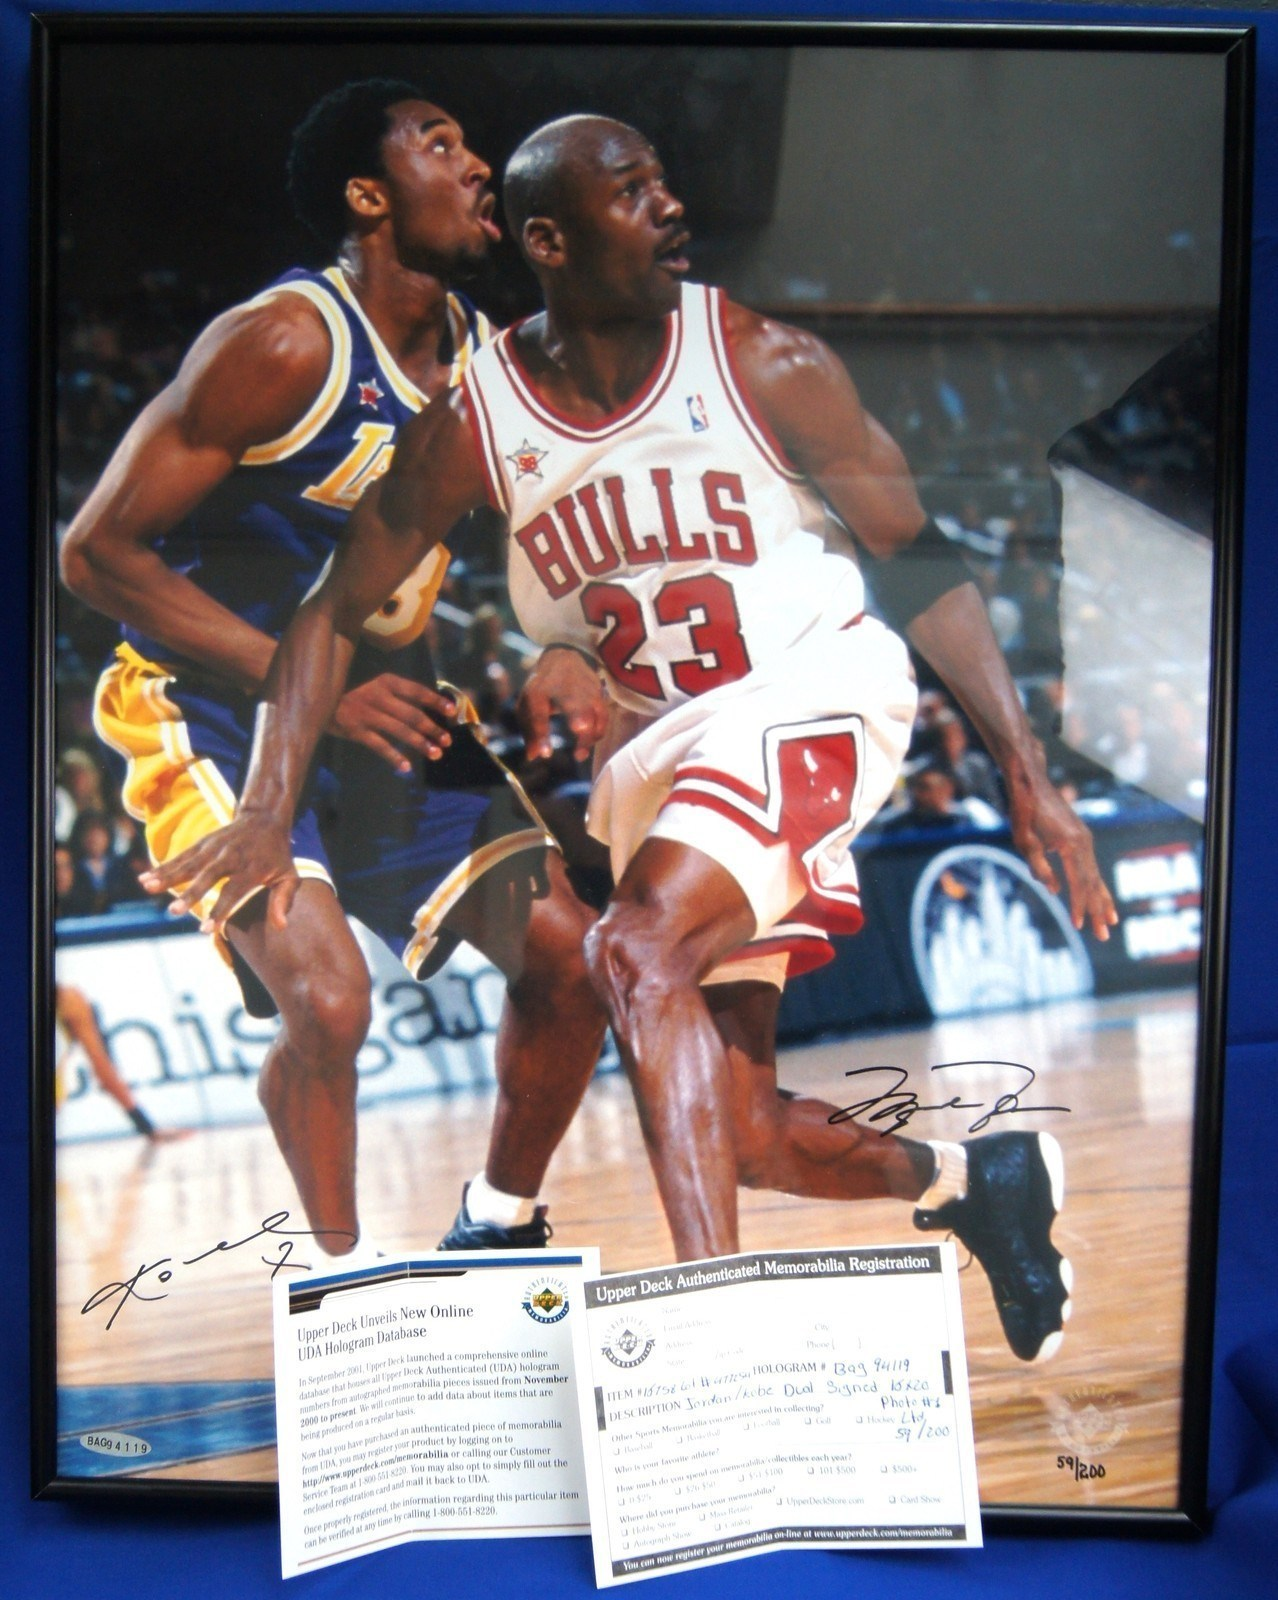 d9cbe056fca Signed Shoe Pricing: Active Listings for Michael Jordan Signed Sneakers